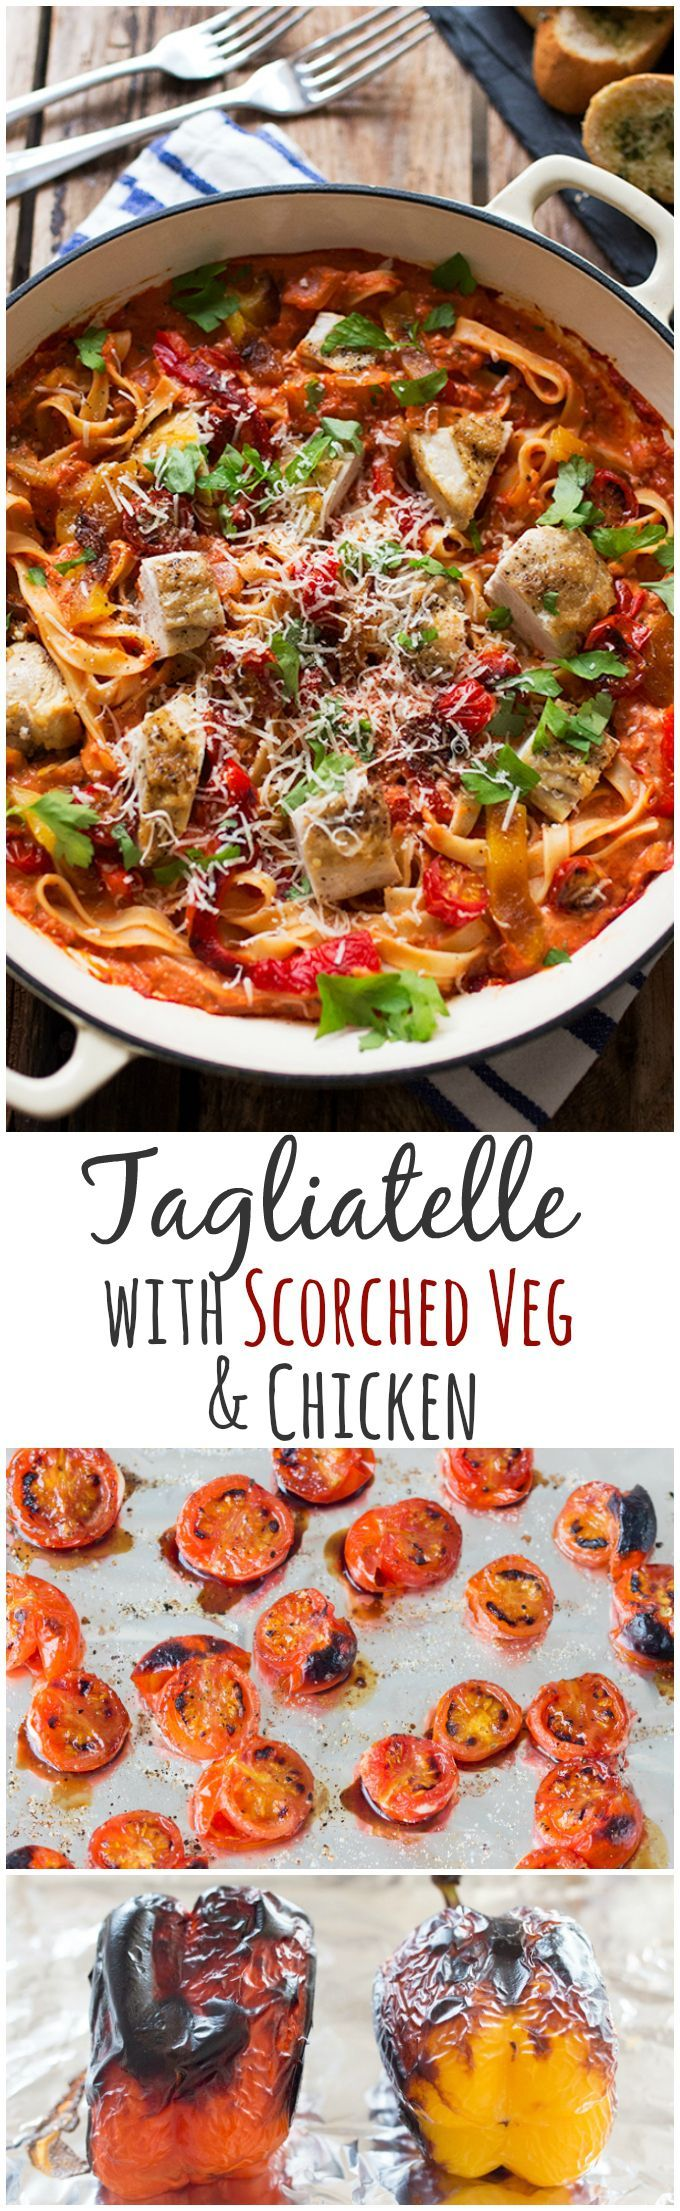 Add extra flavour to your pasta dishes by scorching some tomatoes and peppers under the grill. Mix into a creamy-tomato sauce with tagliatelle and chicken for a dinner that's less than 470 calories (slimming world friendly too).